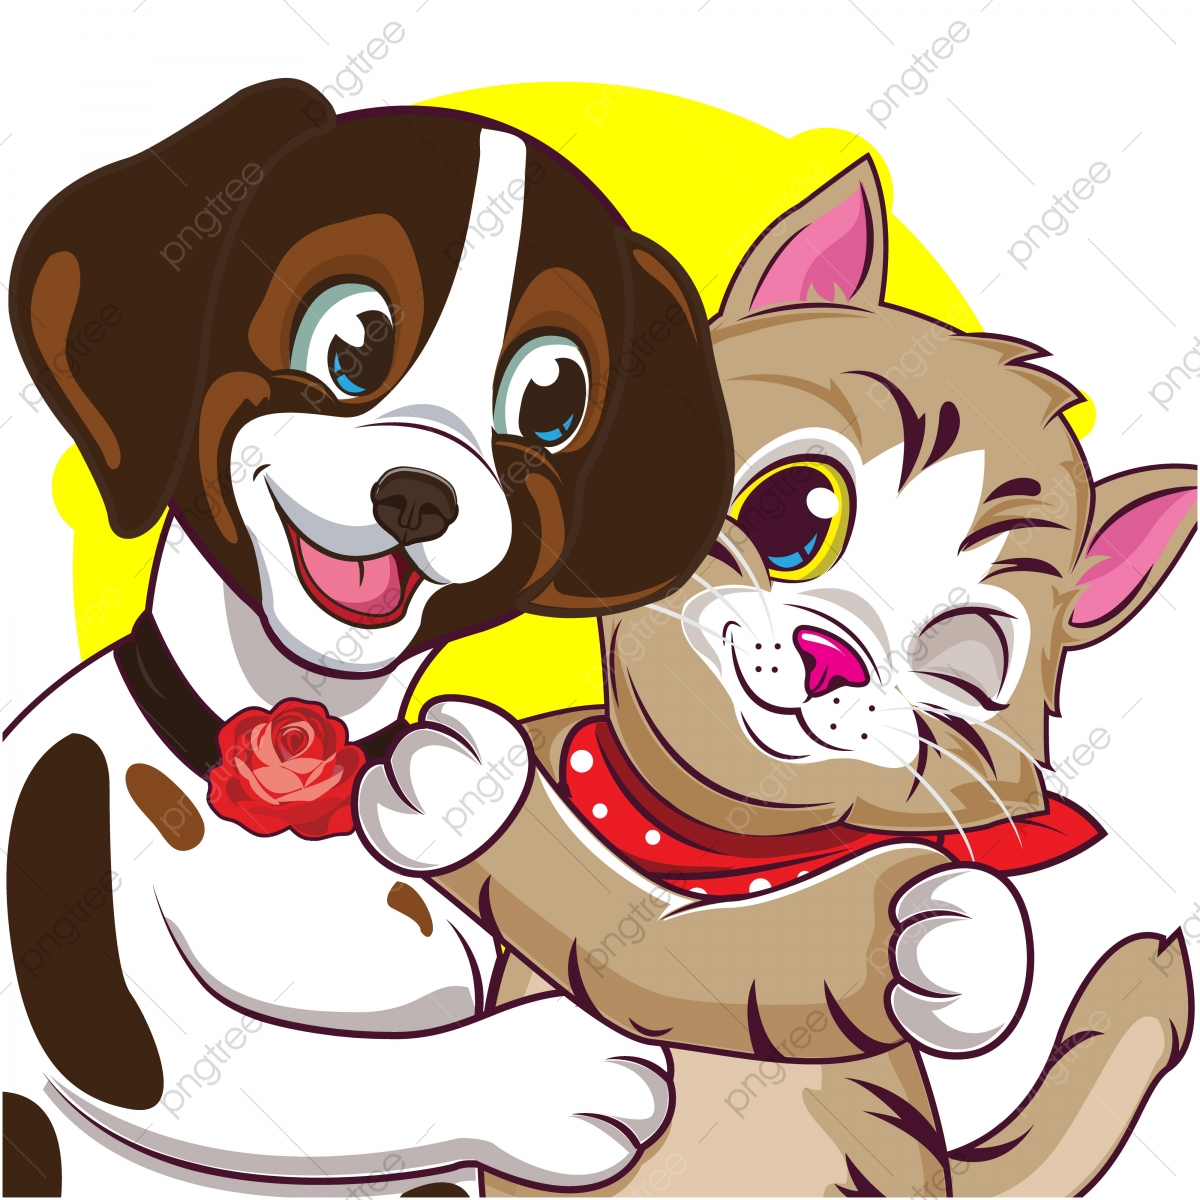 Cute Cartoon Dogs And Cute Cats Animal Web Icon Png And Vector With Transparent Background For Free Download